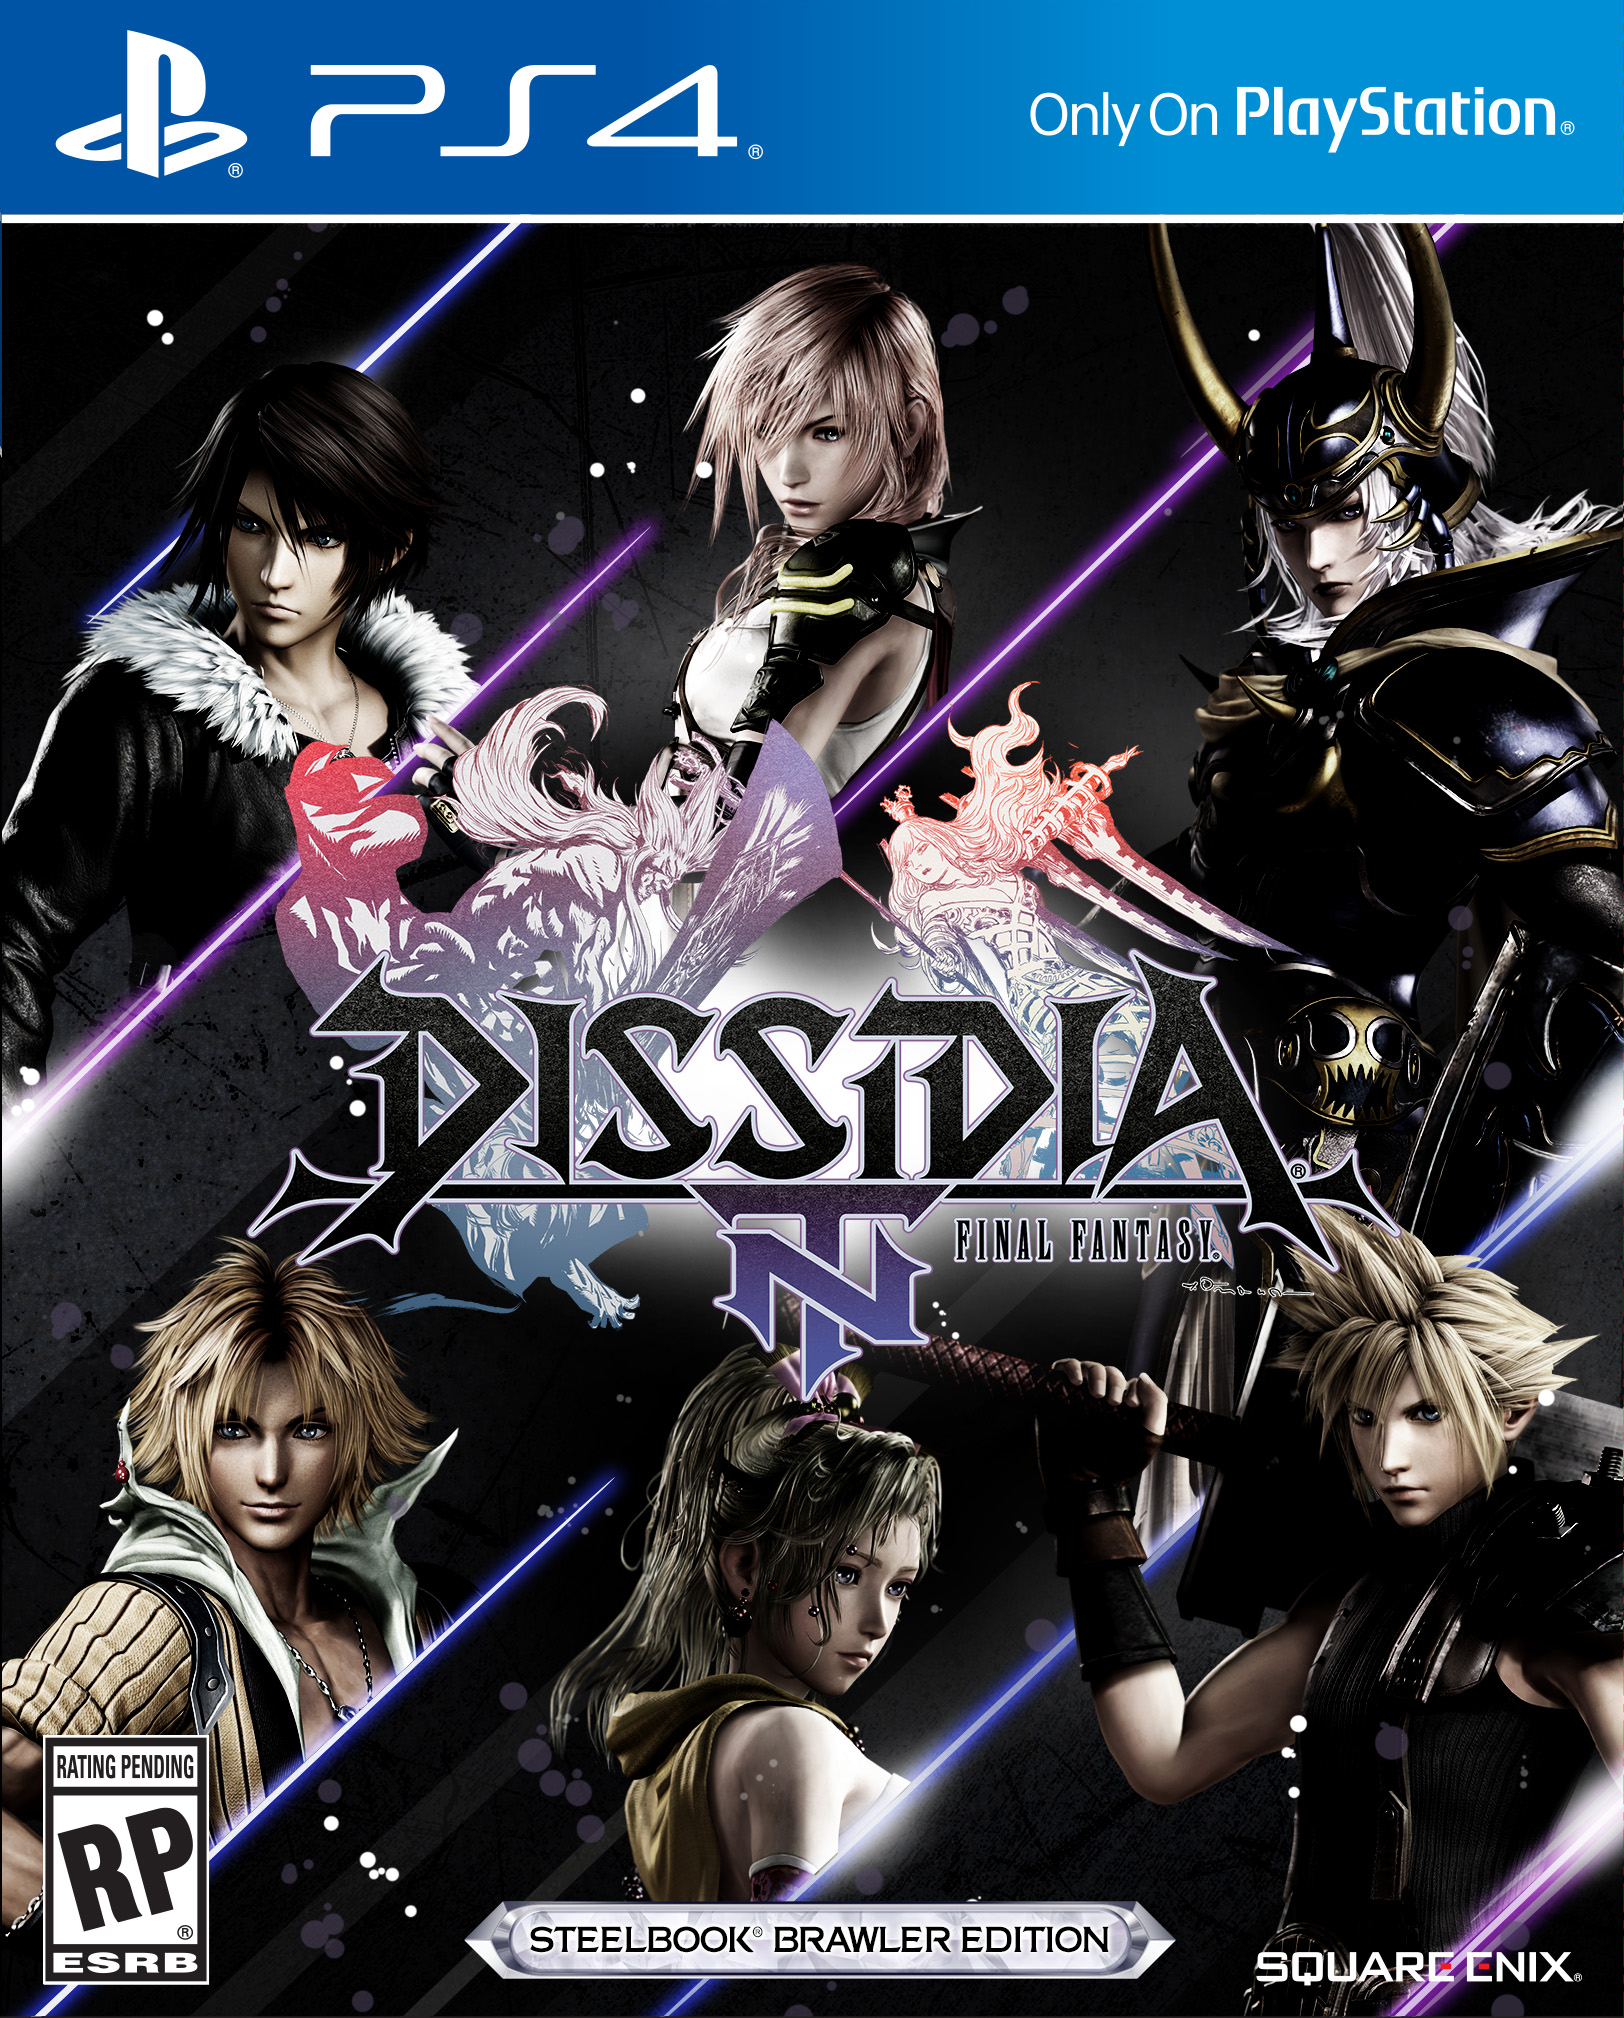 Dissidia Final Fantasy NT will launch January 30